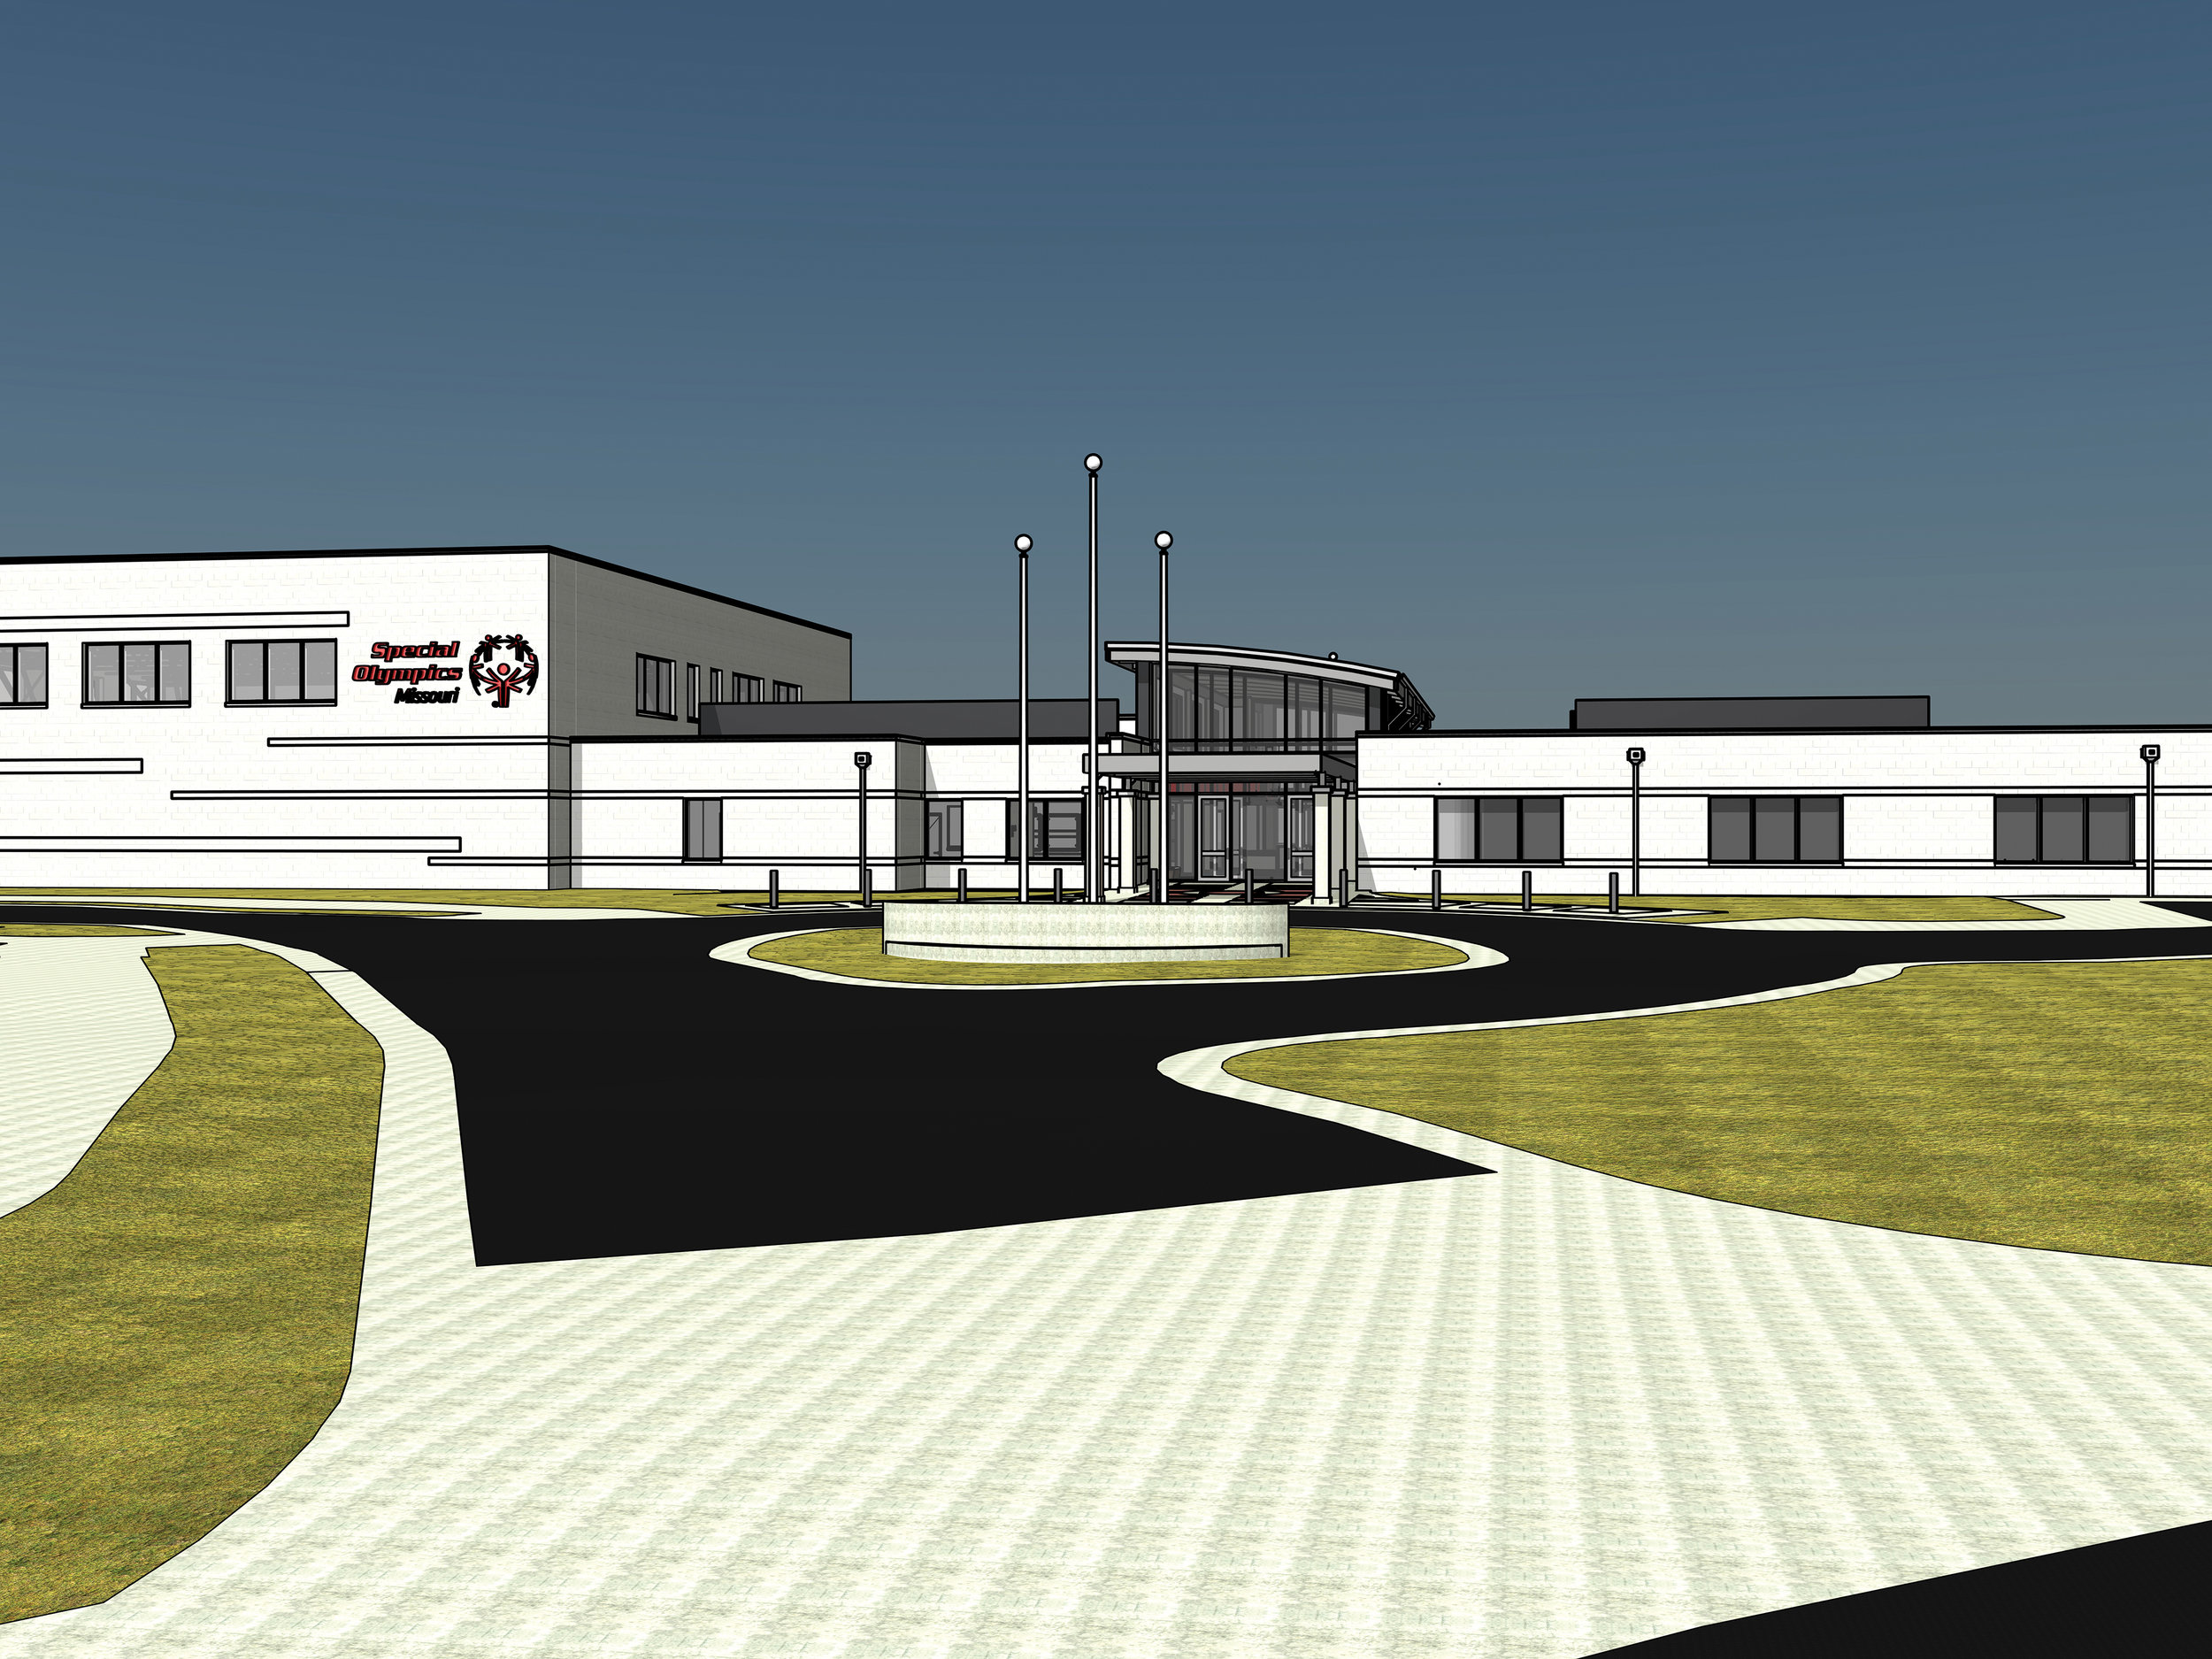 Home - This is the latest rendering of the front entrance to the Training for Life Campus. The left-hand side with the SOMO logo is the Centene Charitable Foundation Sports & Recreation Arena, while the right-hand side is where SOMO's Headquarters and Central Area offices and the Missouri State Knights of Columbus Sports Education Multimedia Center will be housed.